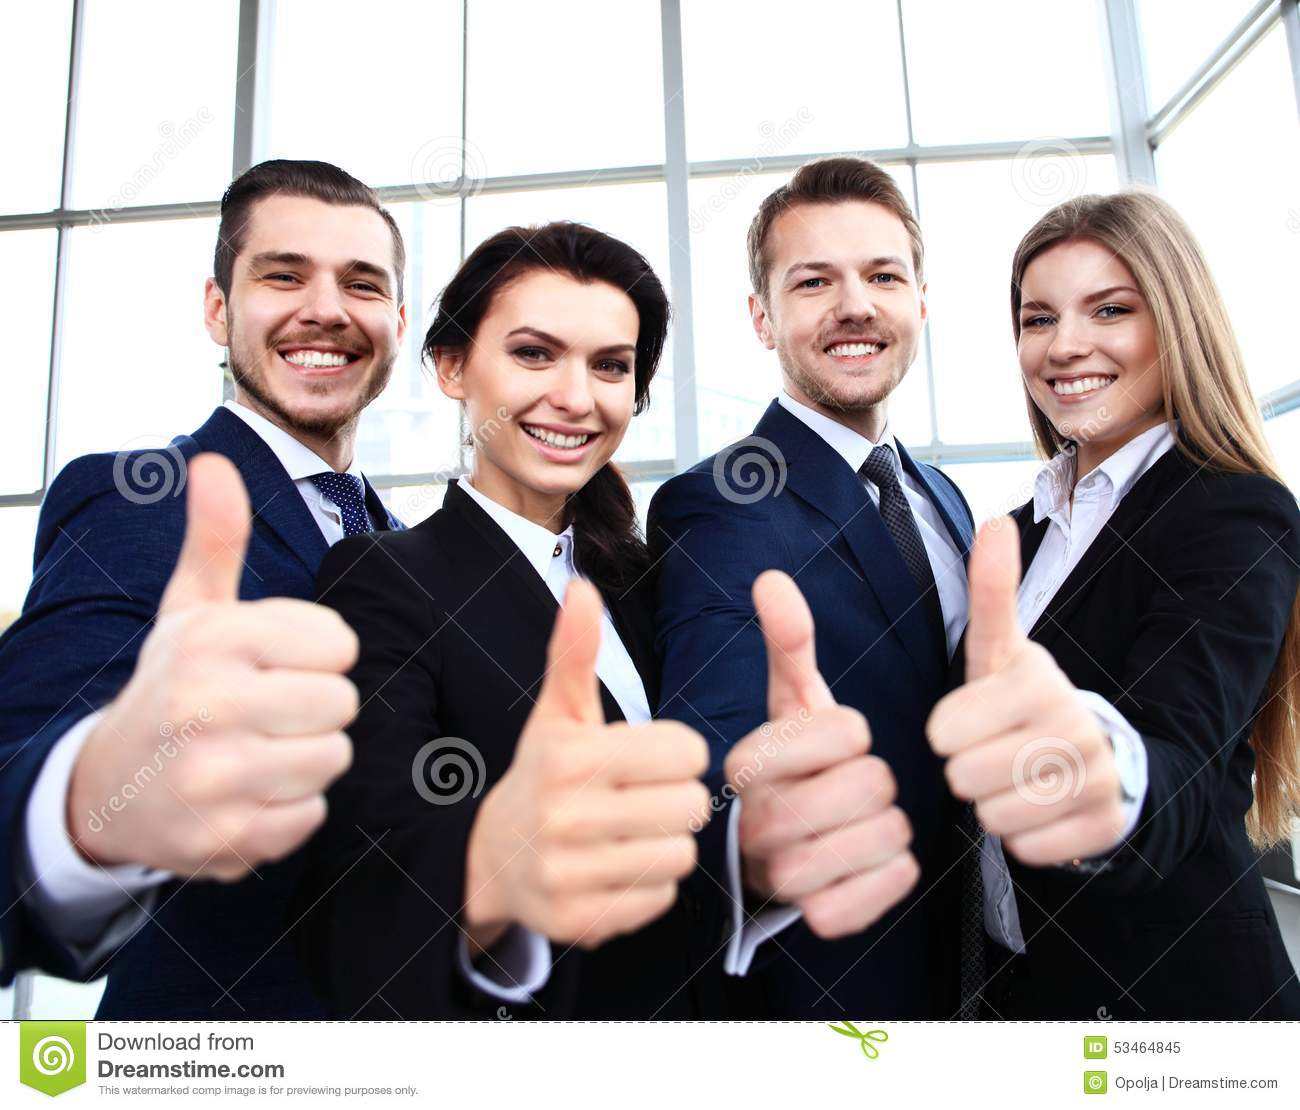 Business concept - successful young business people